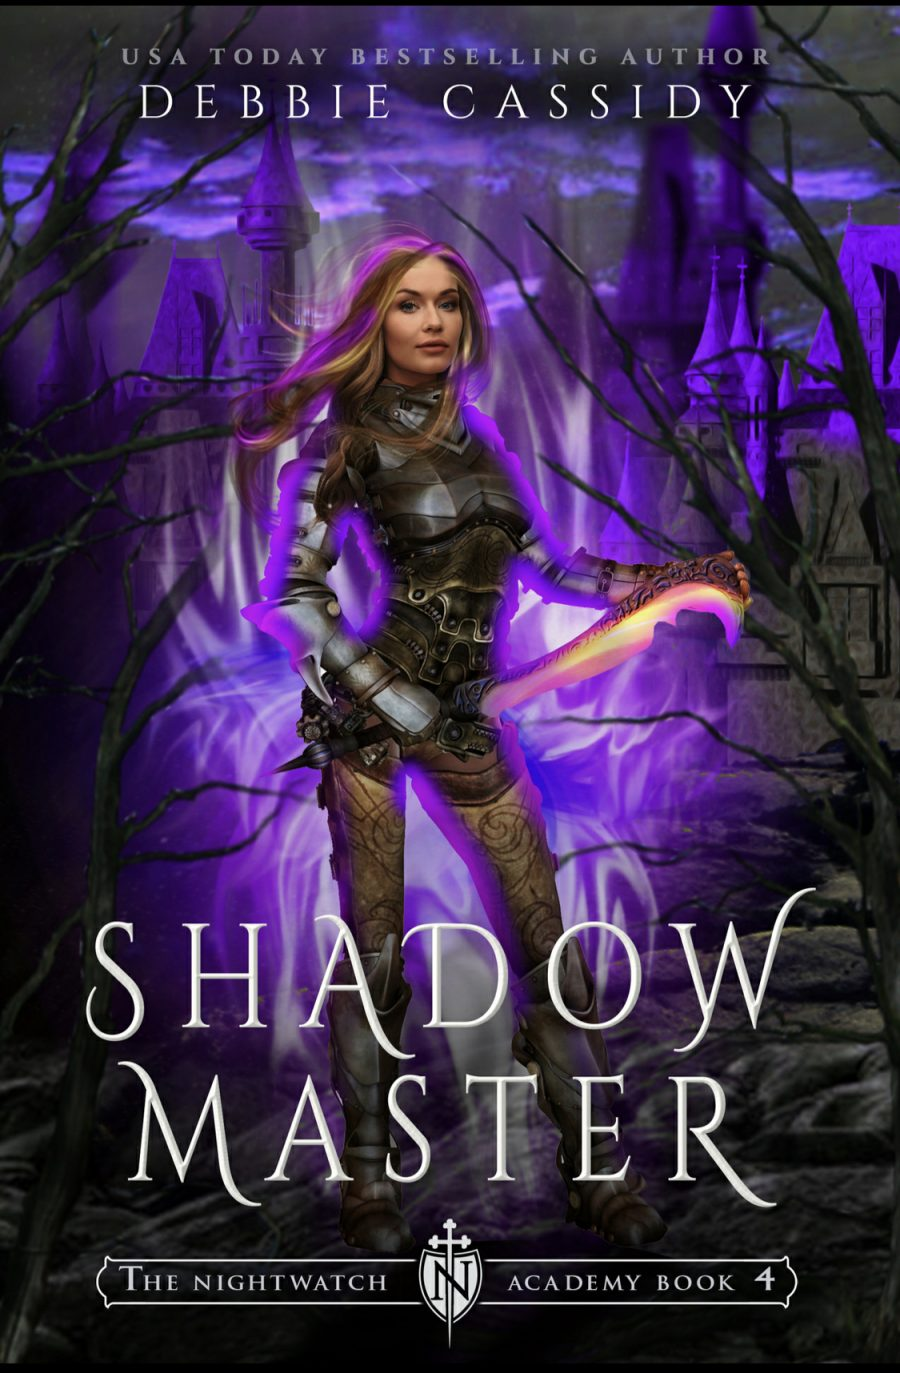 Shadow Master (The Nightwatch Academy - Book 4) by Debbie Cassidy - A Book Review #BookReview #SlowBurn #RH #PNR #FinalBook #SeriesComplete #KindleUnlimited #KU